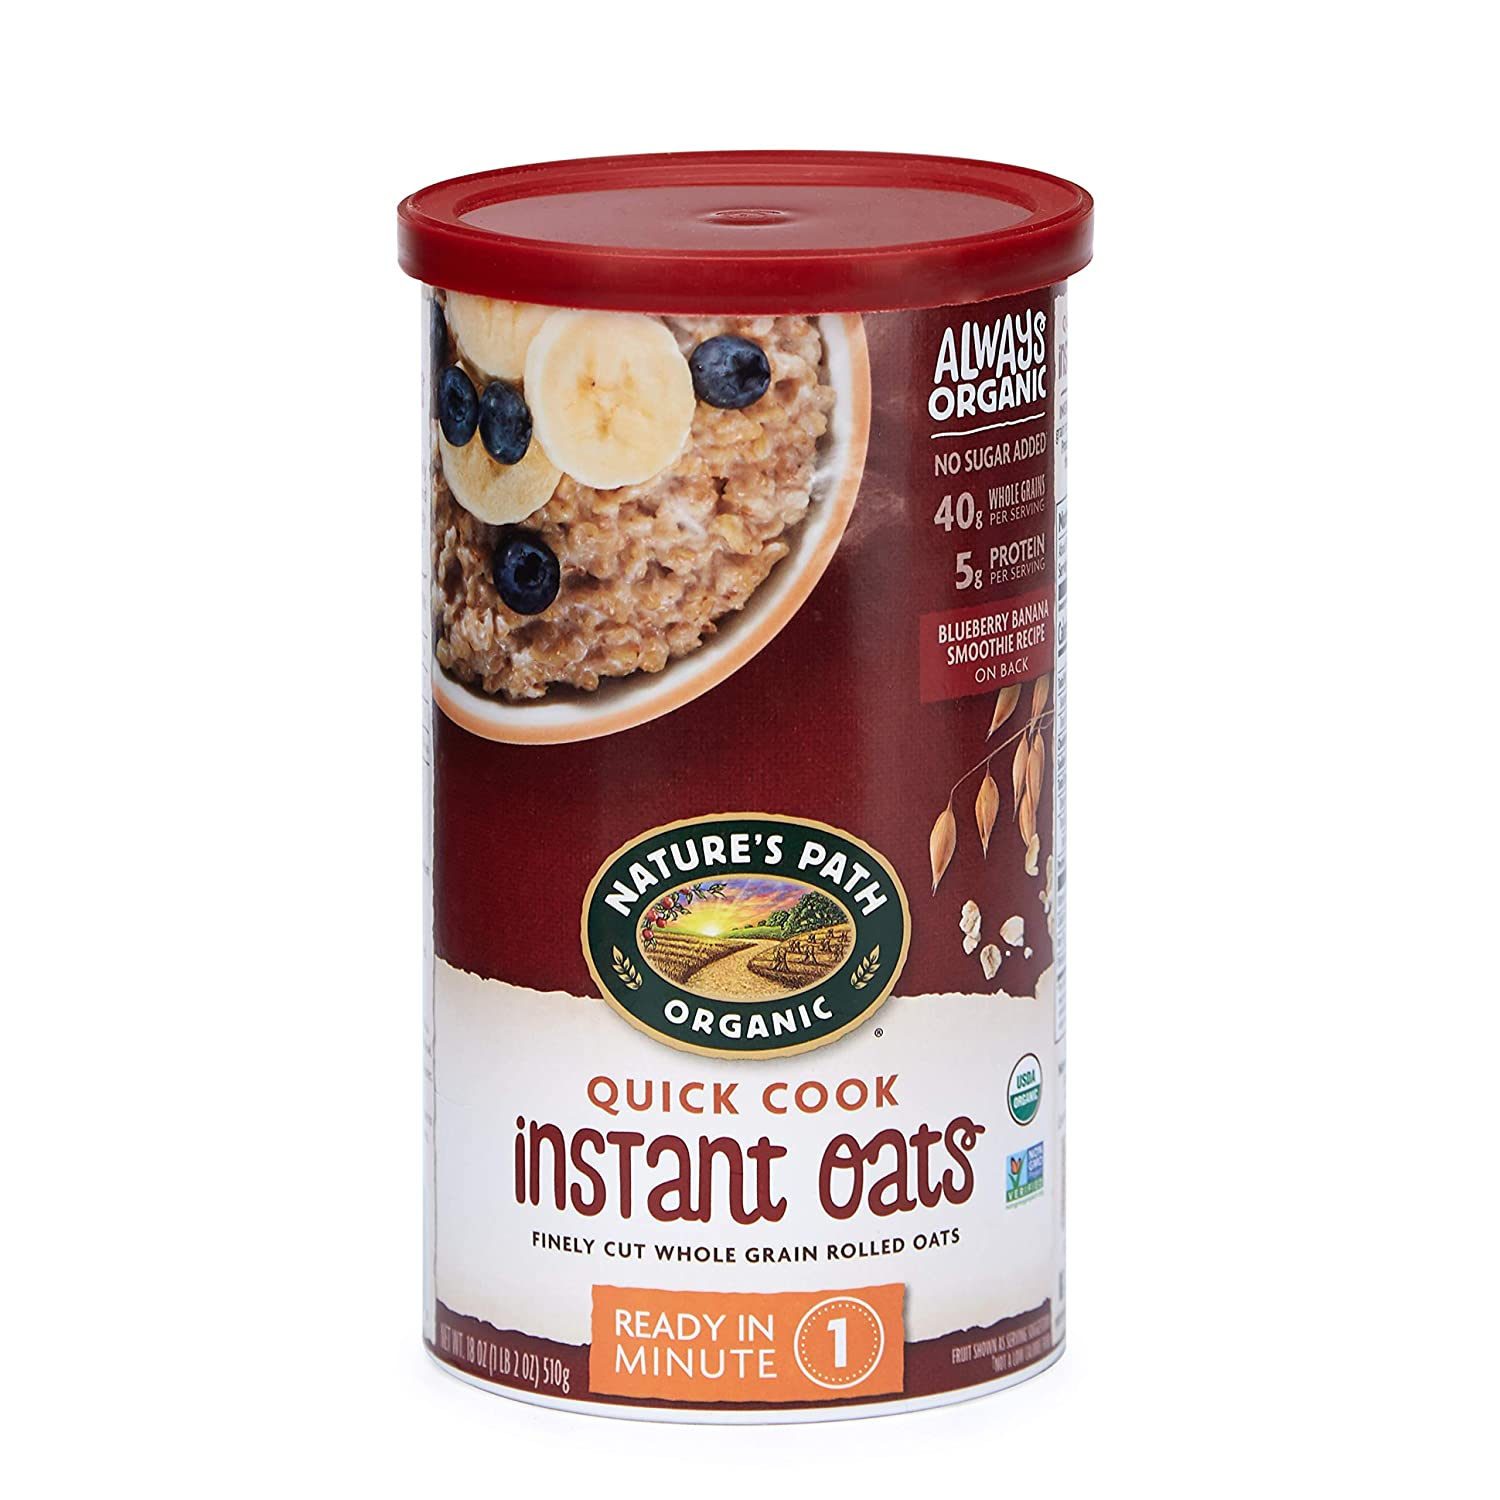 Nature's Path Instant Oats, Healthy, Organic & Sugar Free, 1 Canister, 18 Ounces (Pack of 6)